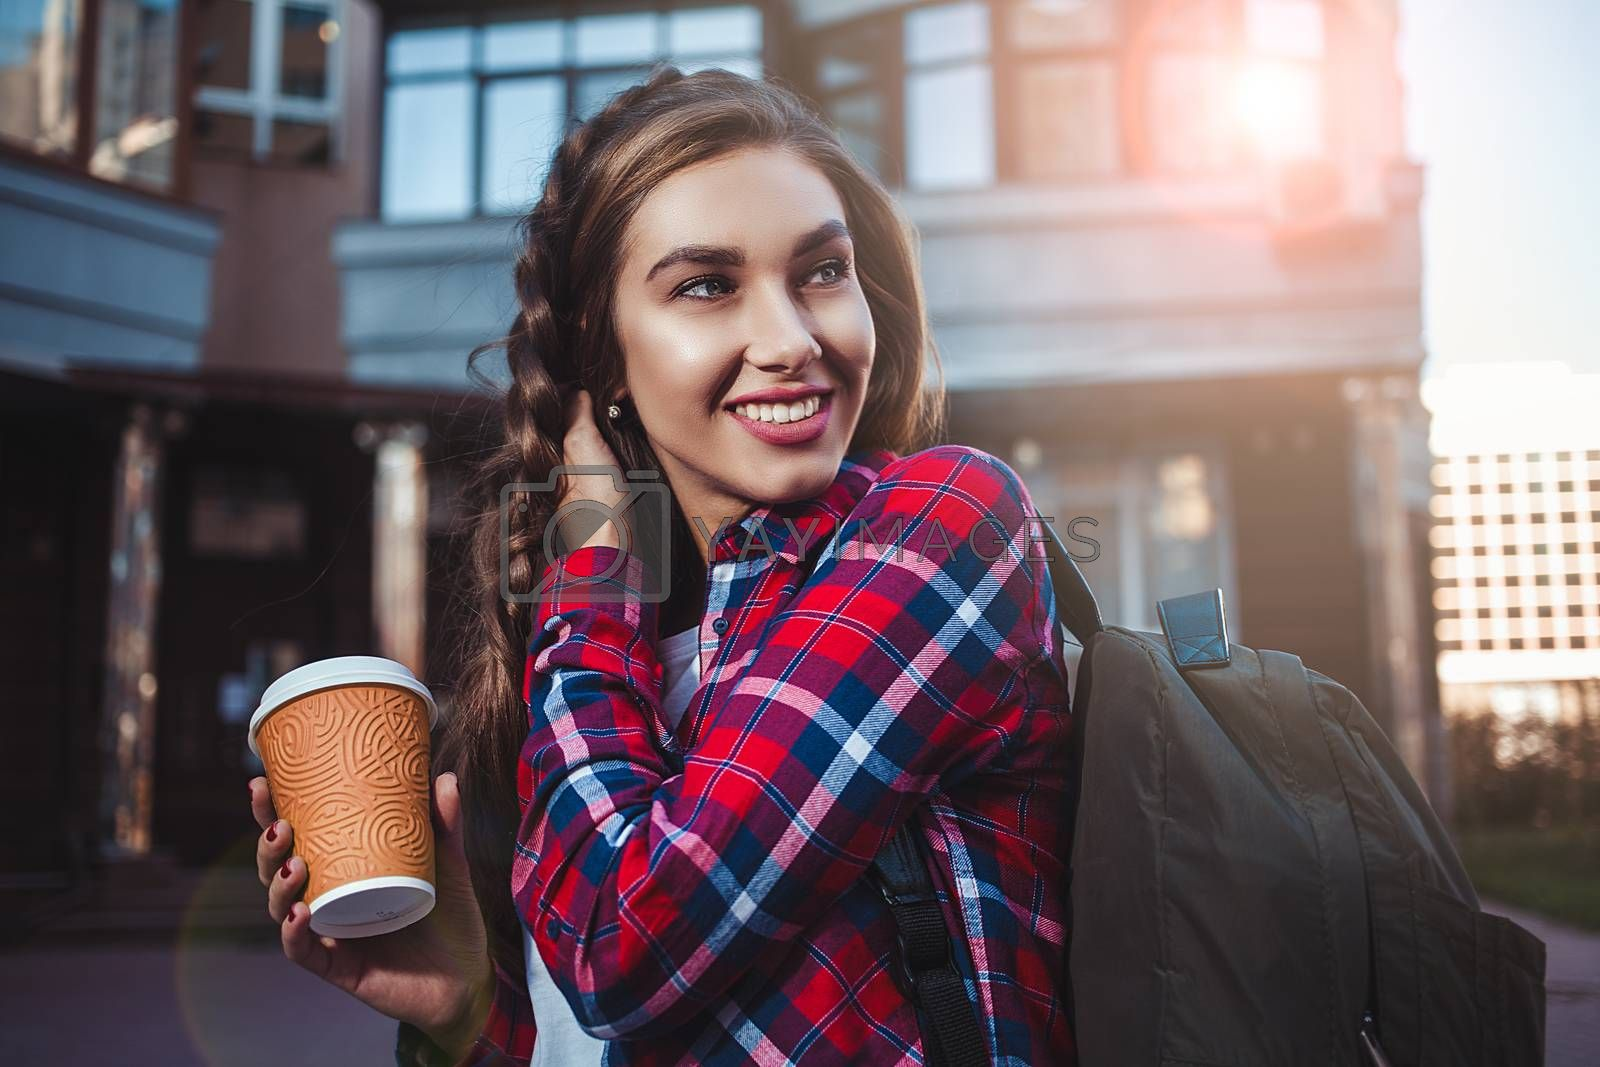 Awesome girl in urban style walk in city with coffee.